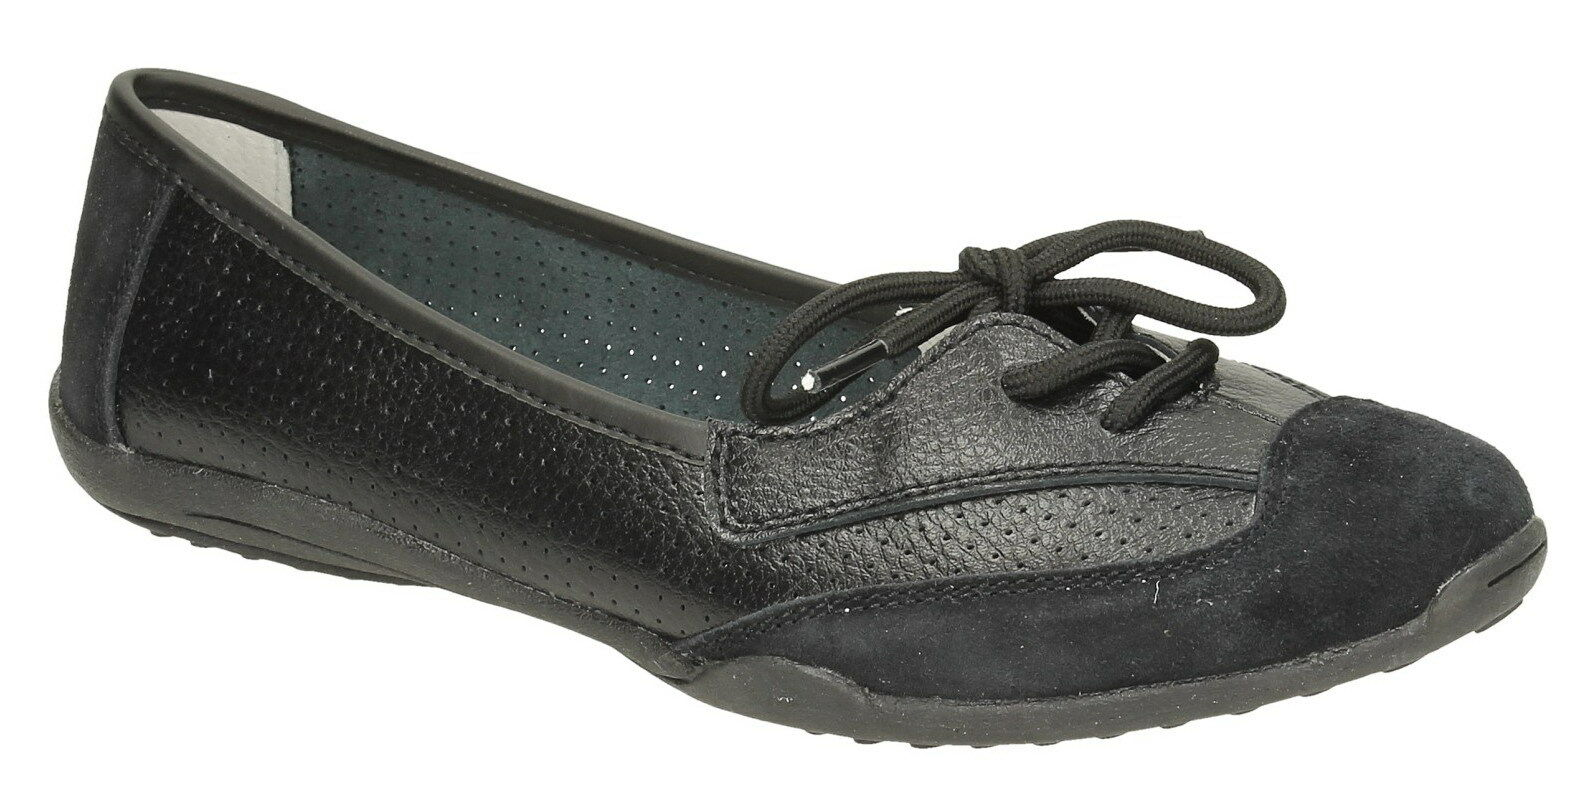 Down To Earth F8R0220 Ladies Black Lace Up Leather Casual Comfort shoes